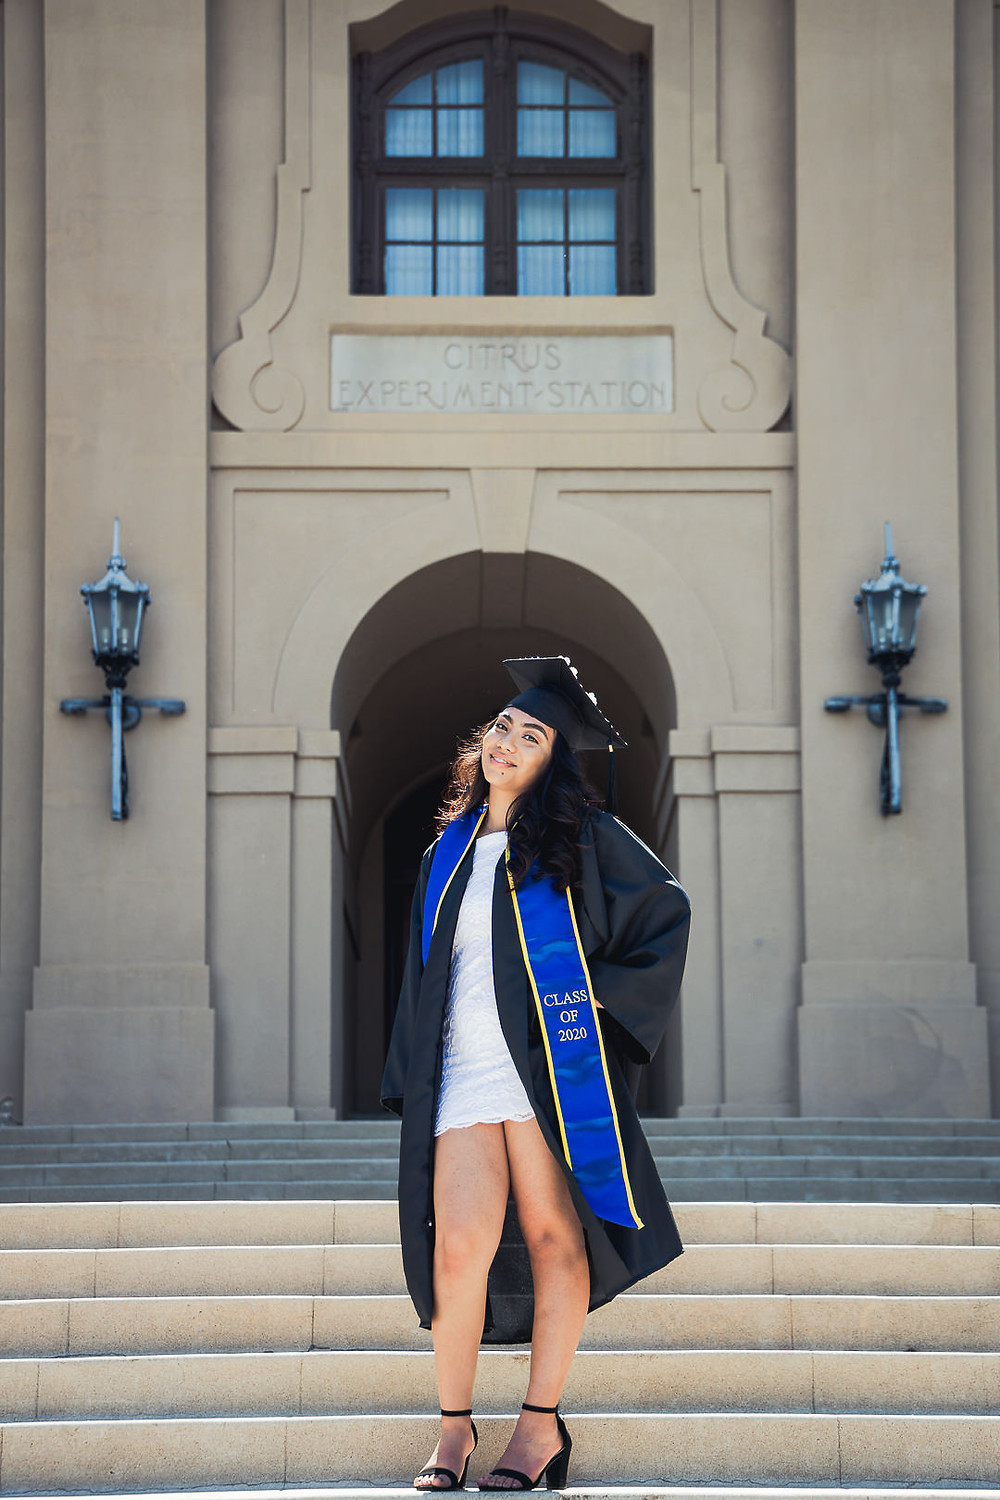 University of California Riverside Graduation Photos | Ashley 15